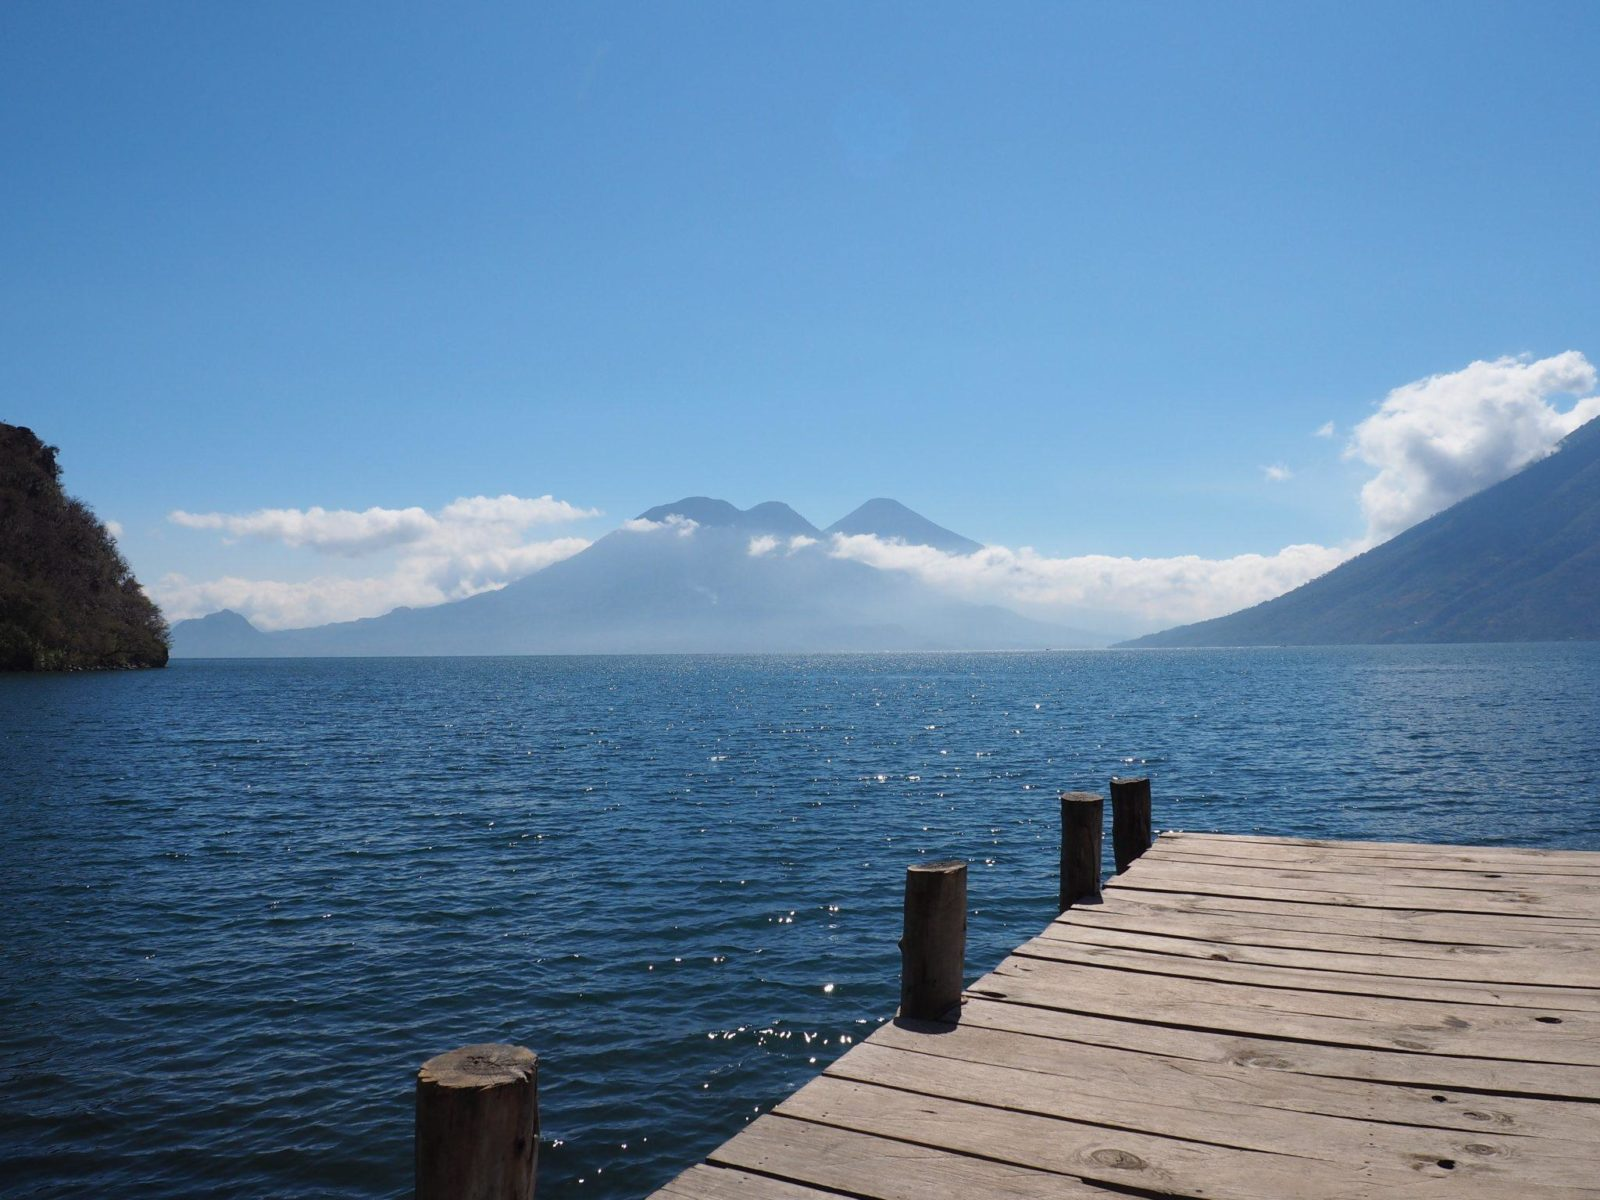 Guatemala Guides | The best of Guatemala in 1 week | How to spend 1 week in Guatemala